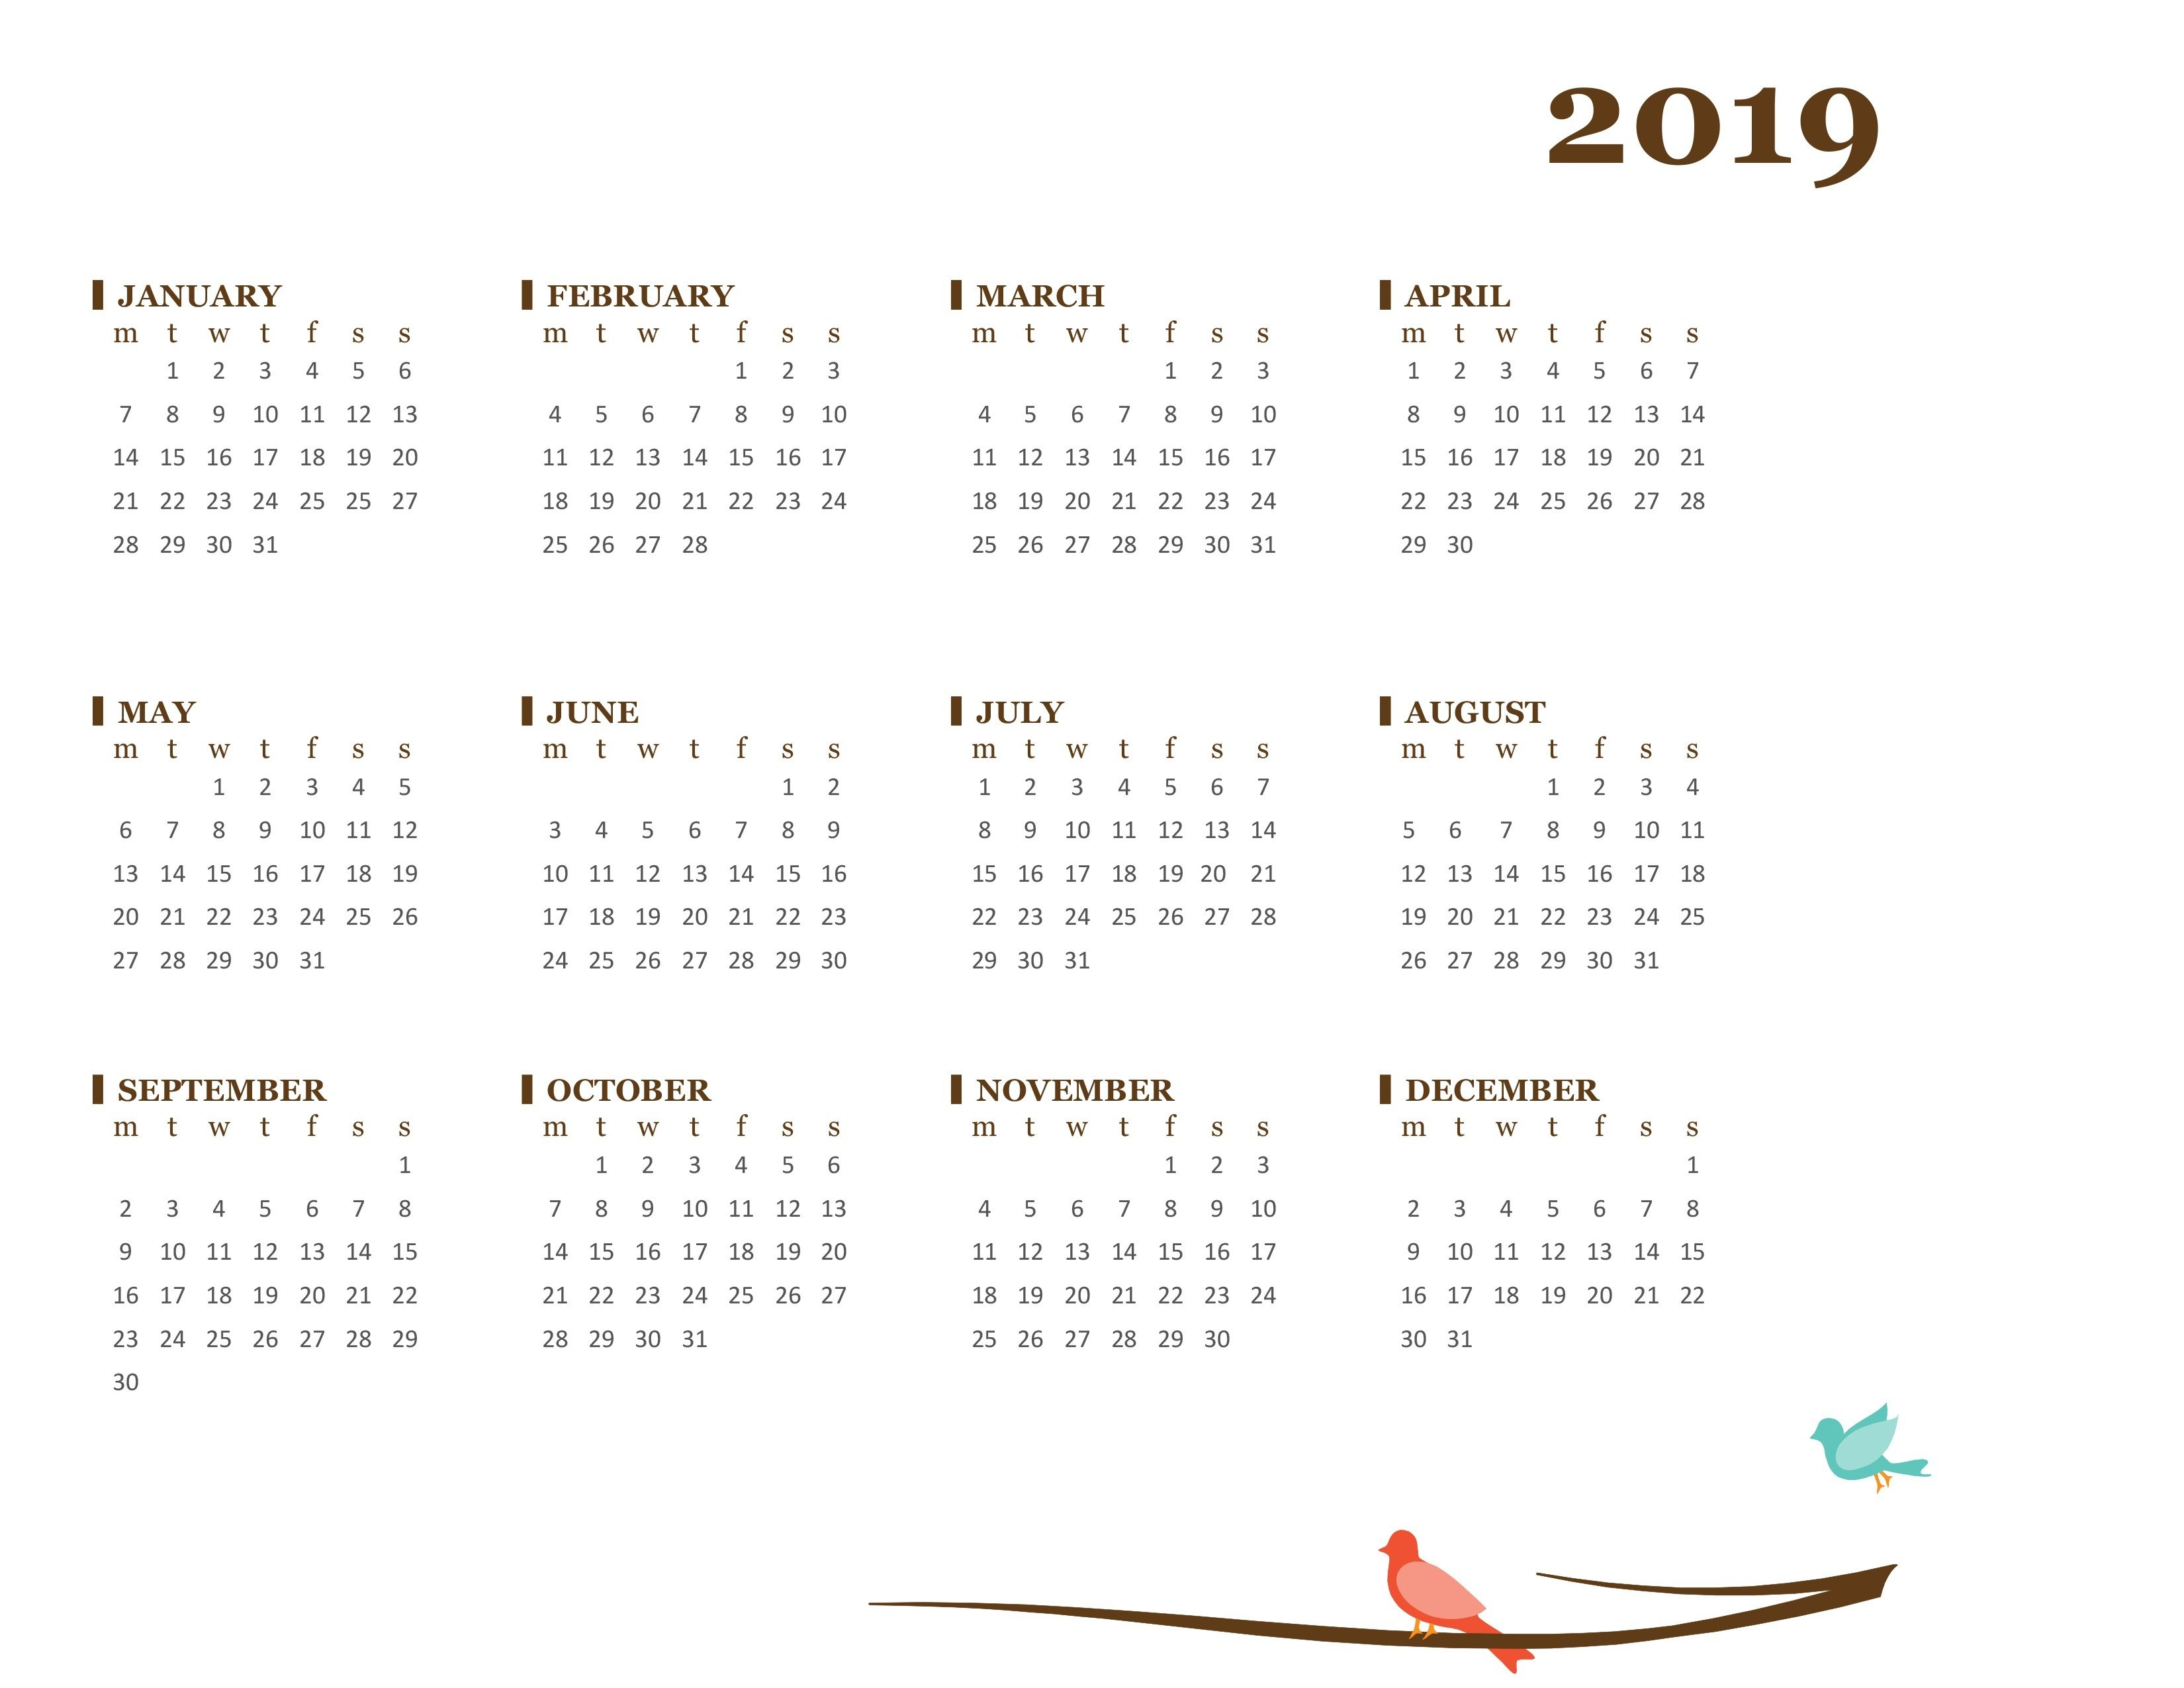 2019 Yearly Calendar (Mon-Sun) Images Of A 2019 Calendar